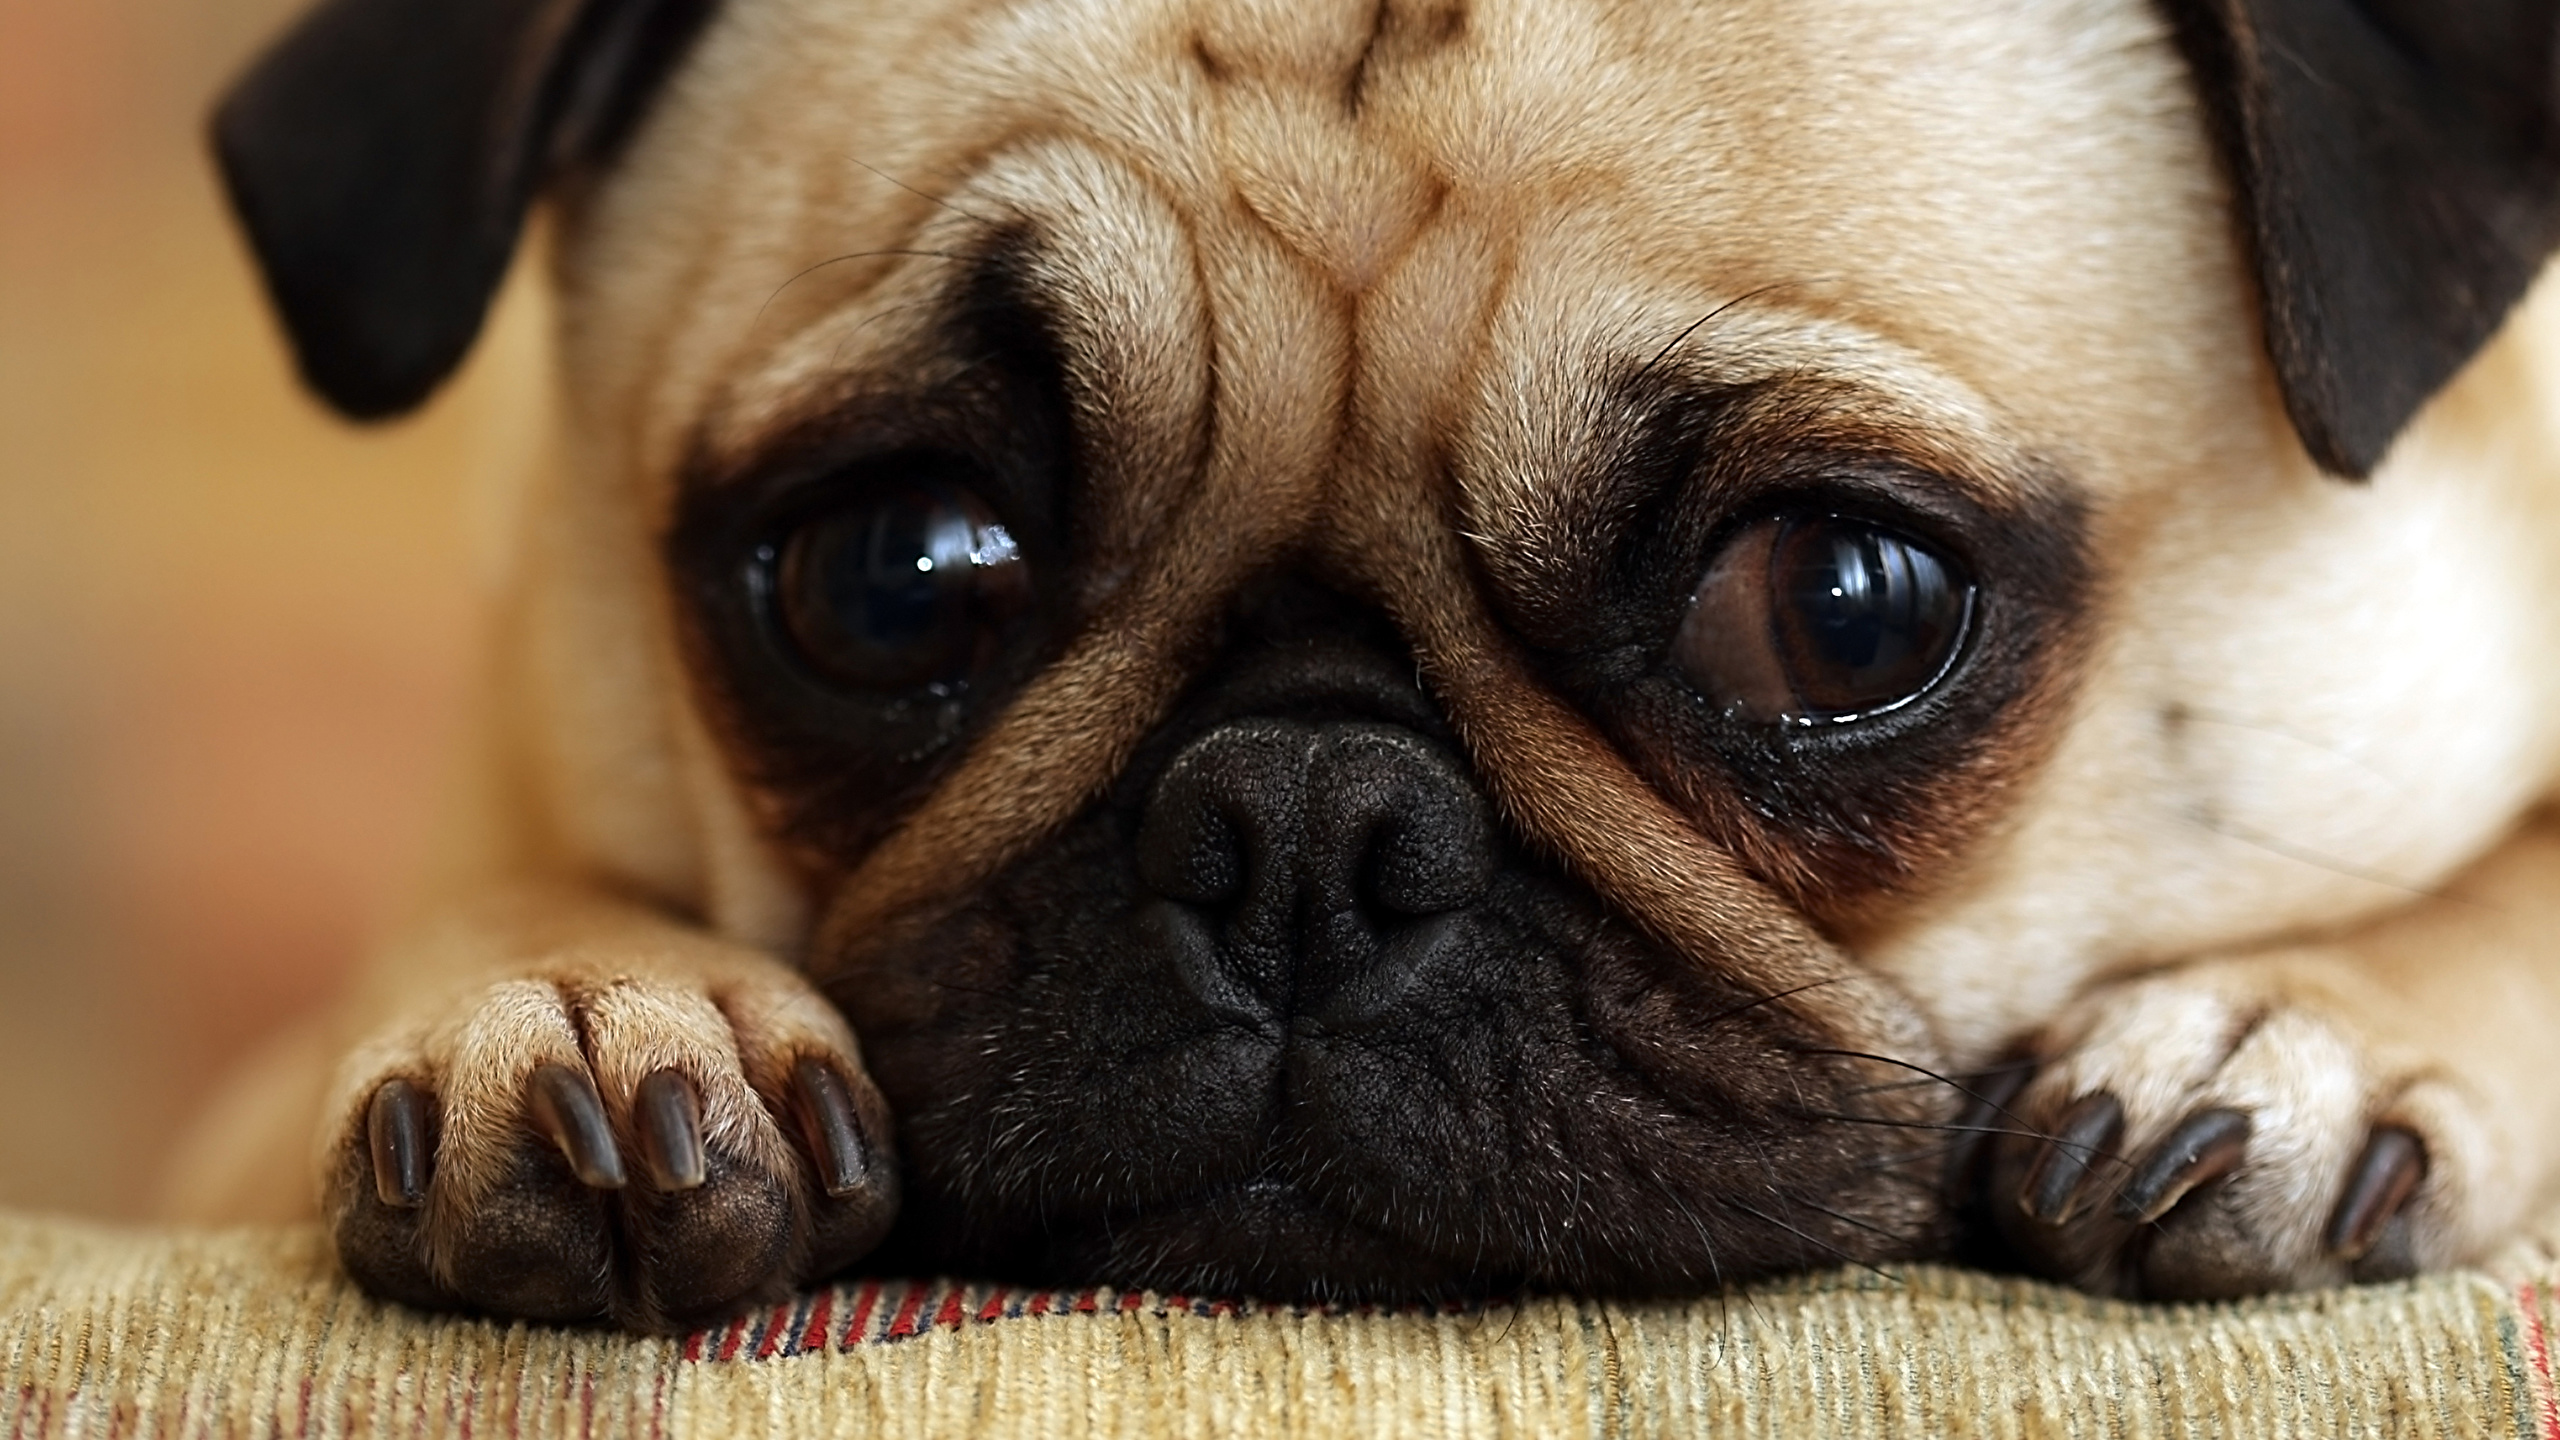 Pictures Pug Puppy Dogs Paws Snout Animal 2560x1440